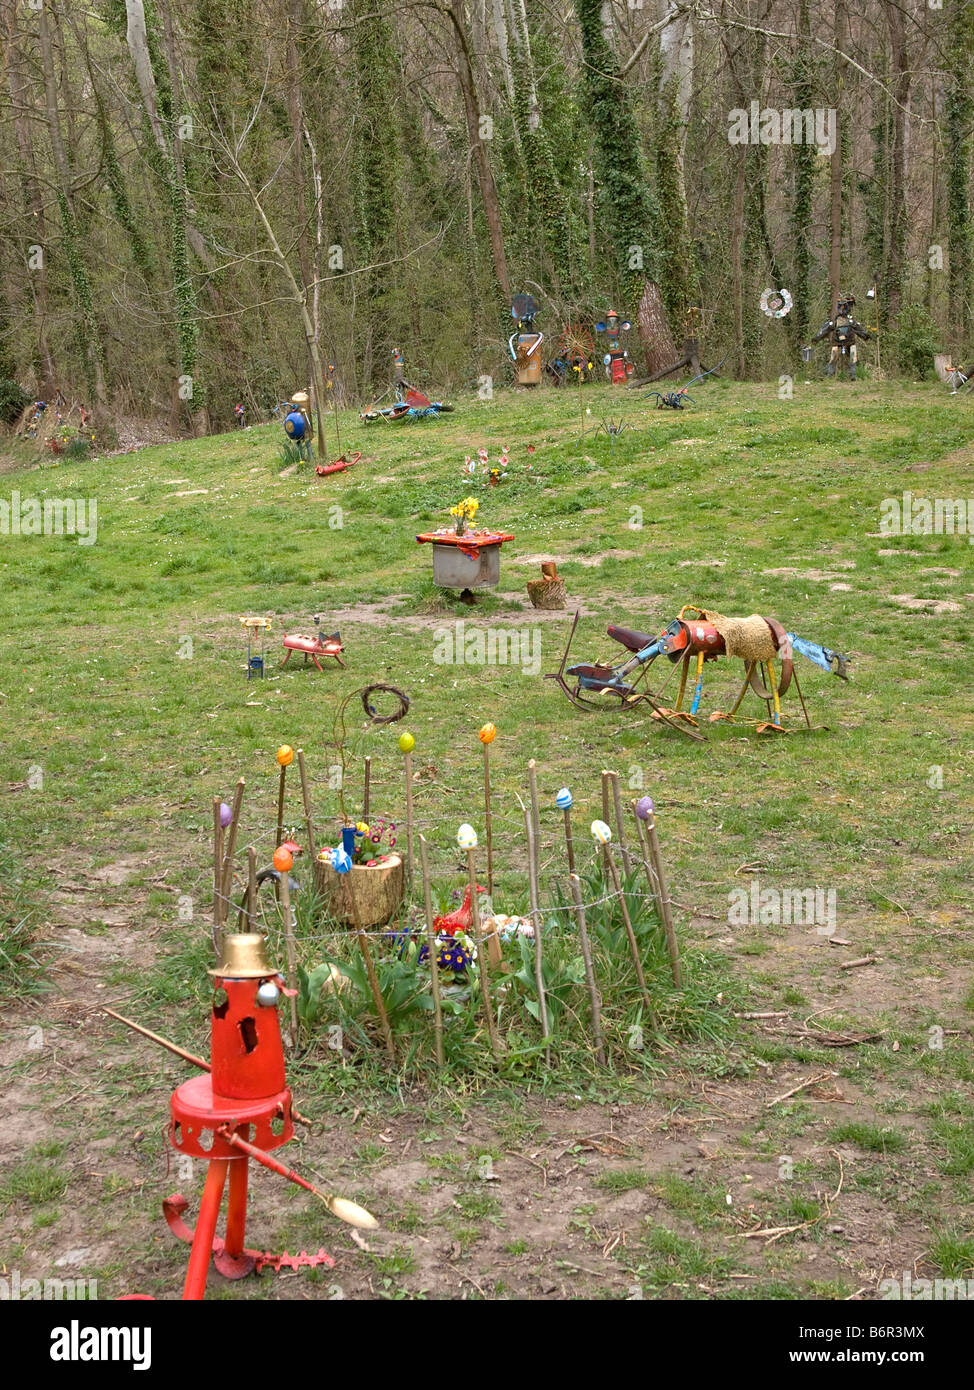 art figures made of scrab old things in forest in Burkheim Baden Wuerttemberg Germany - Stock Image